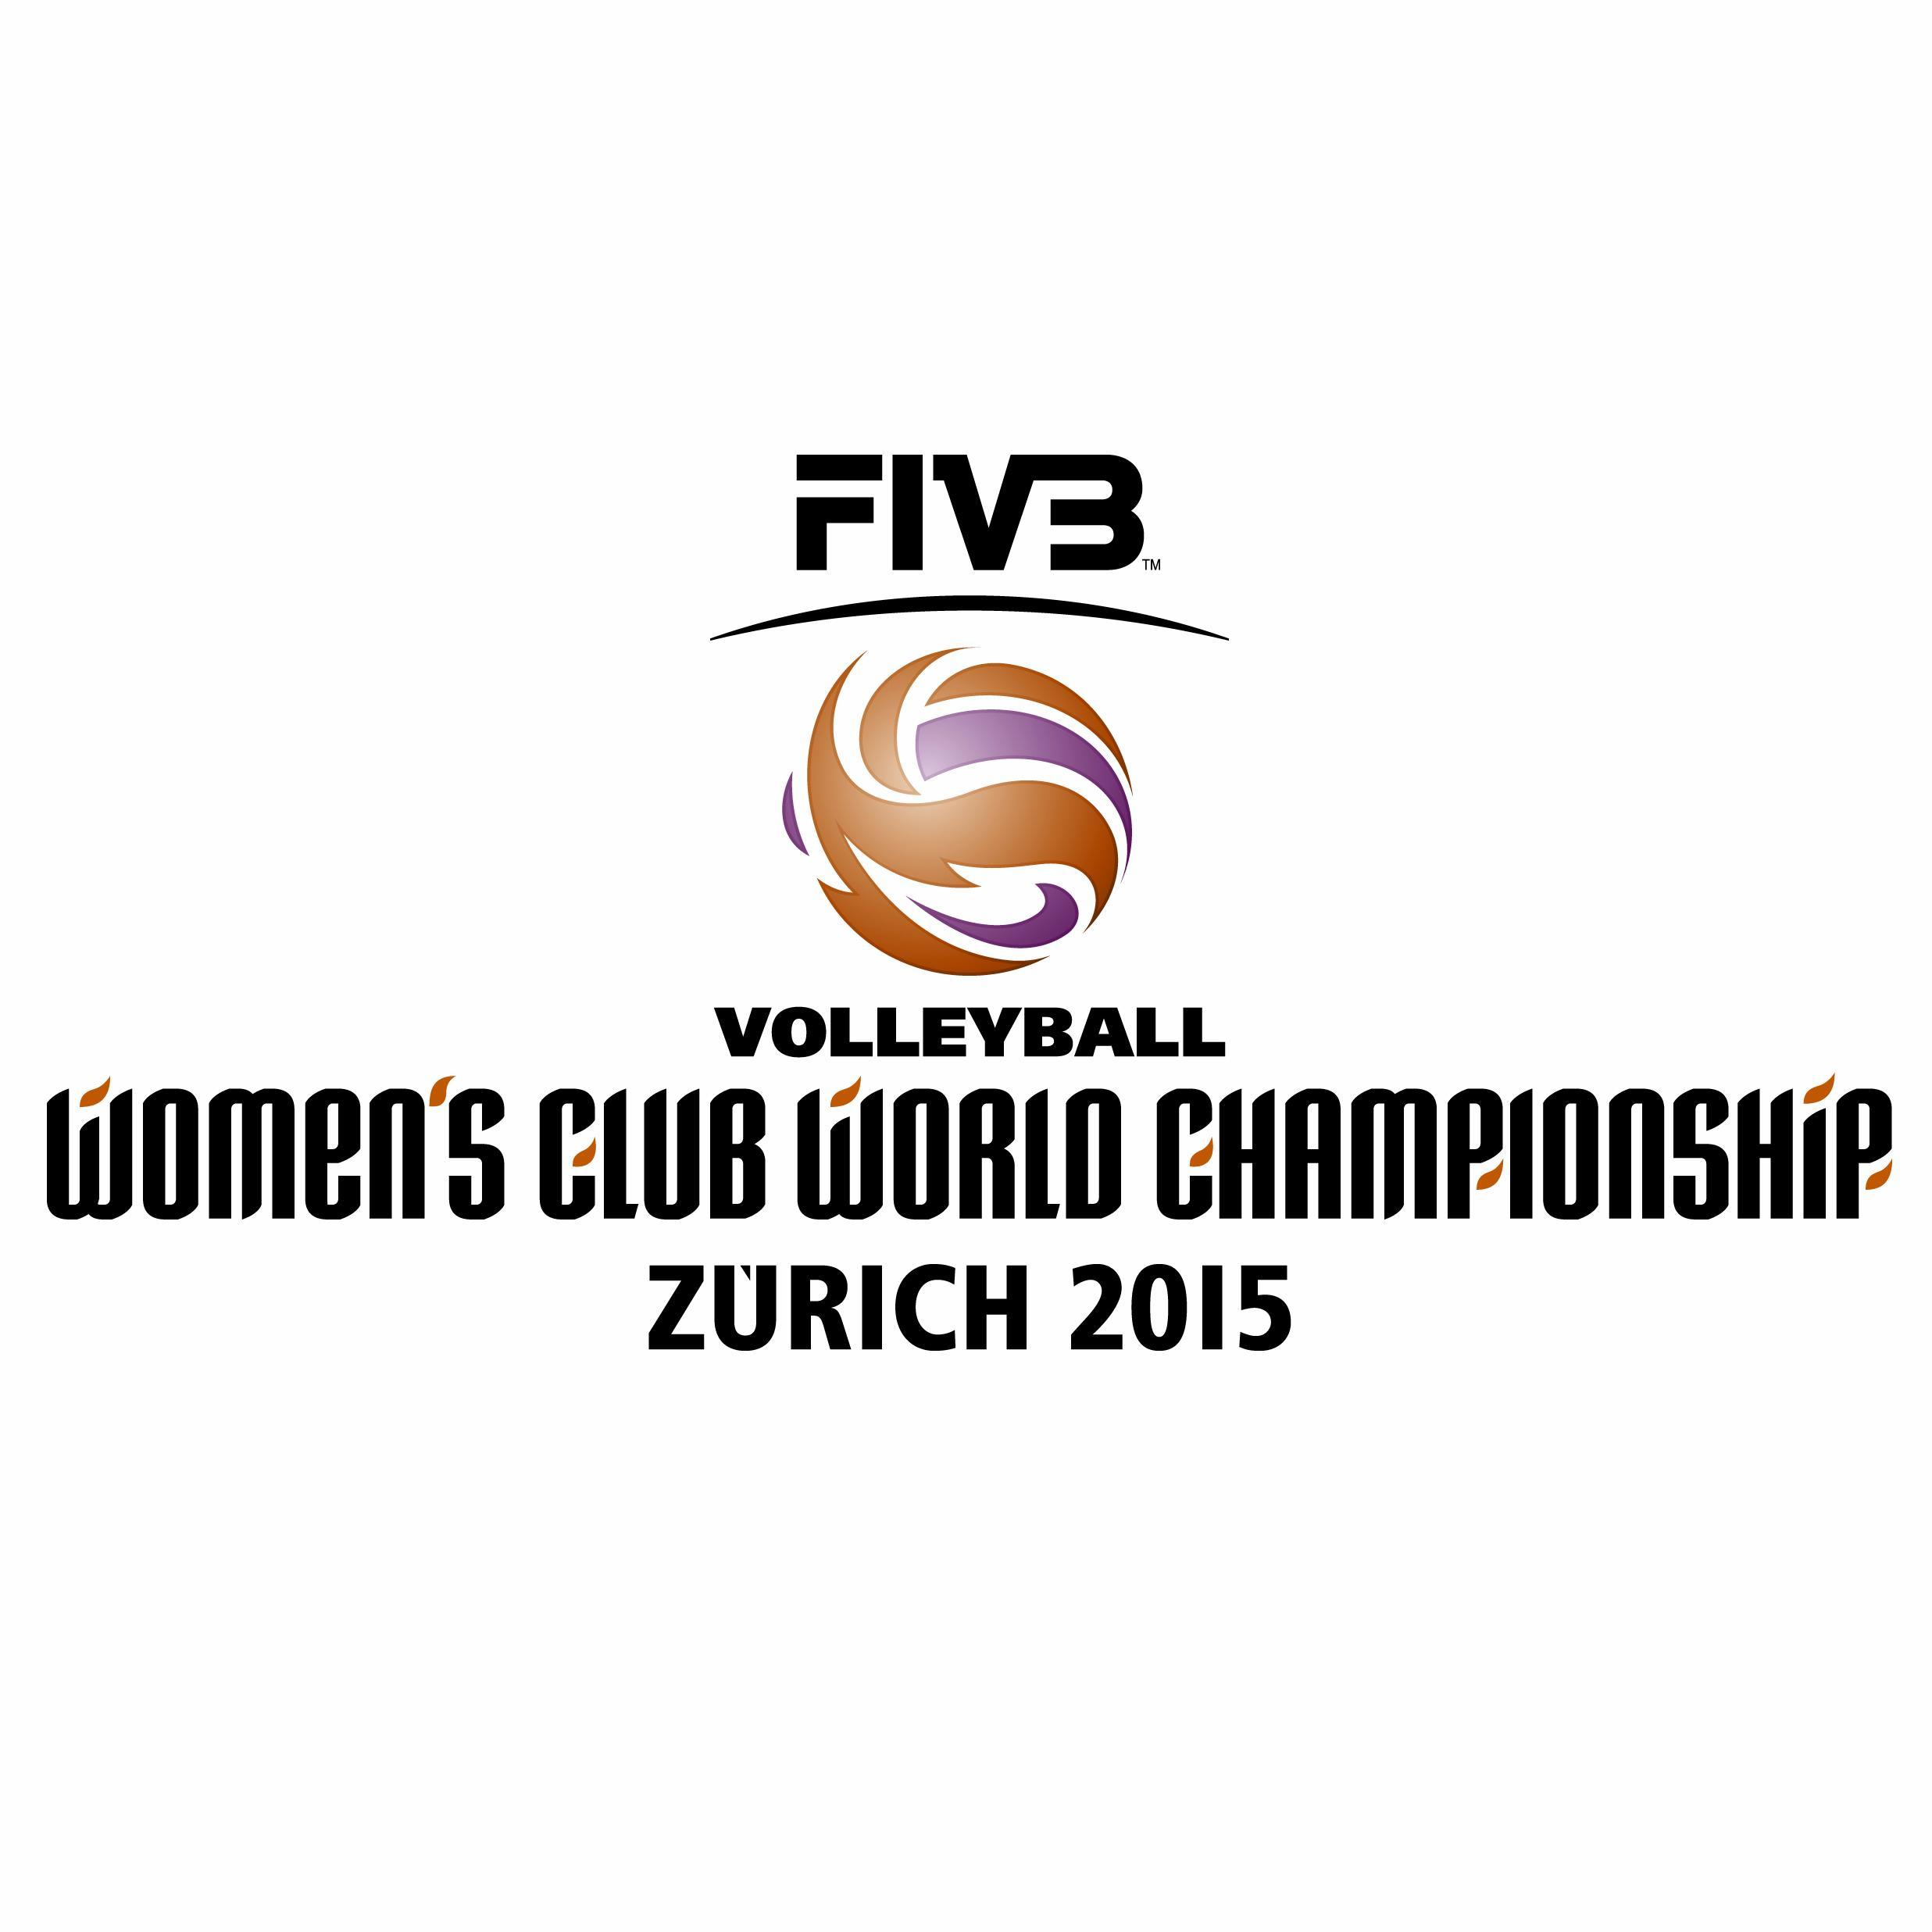 2015 FIVB Volleyball Women's Club World Championship